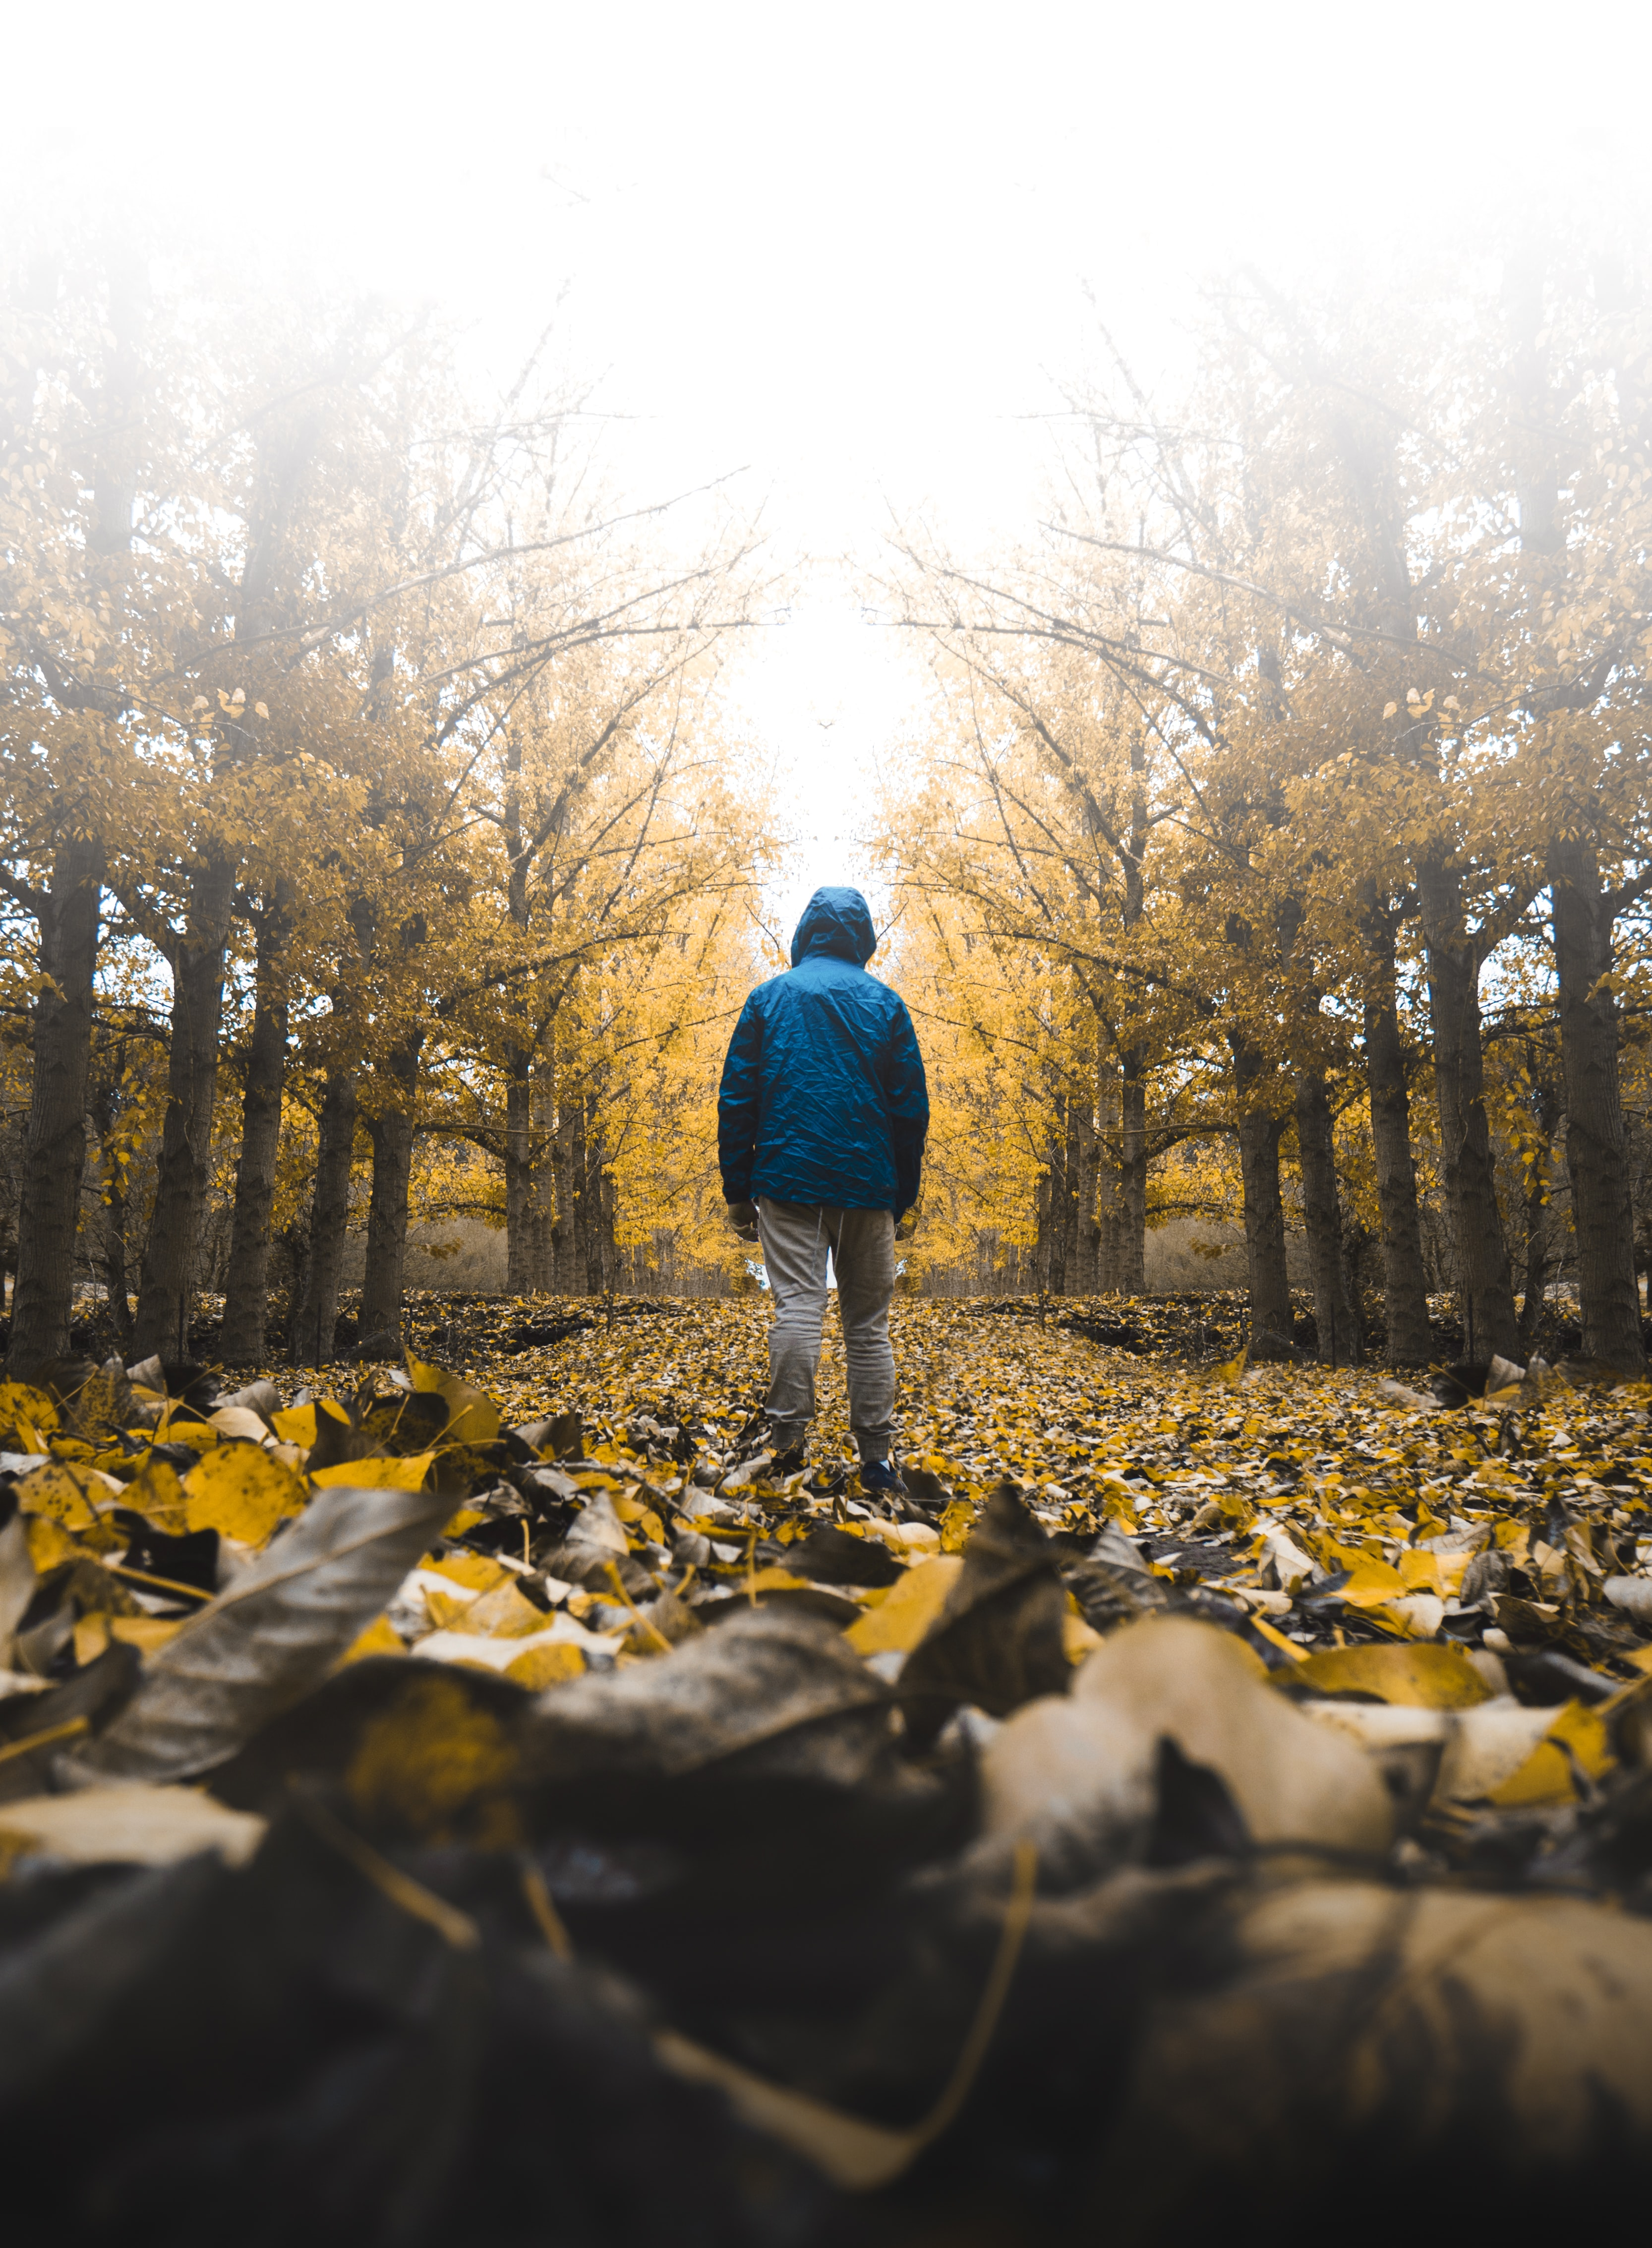 157155 download wallpaper Miscellanea, Miscellaneous, Alone, Lonely, Loneliness, Hood, Autumn screensavers and pictures for free